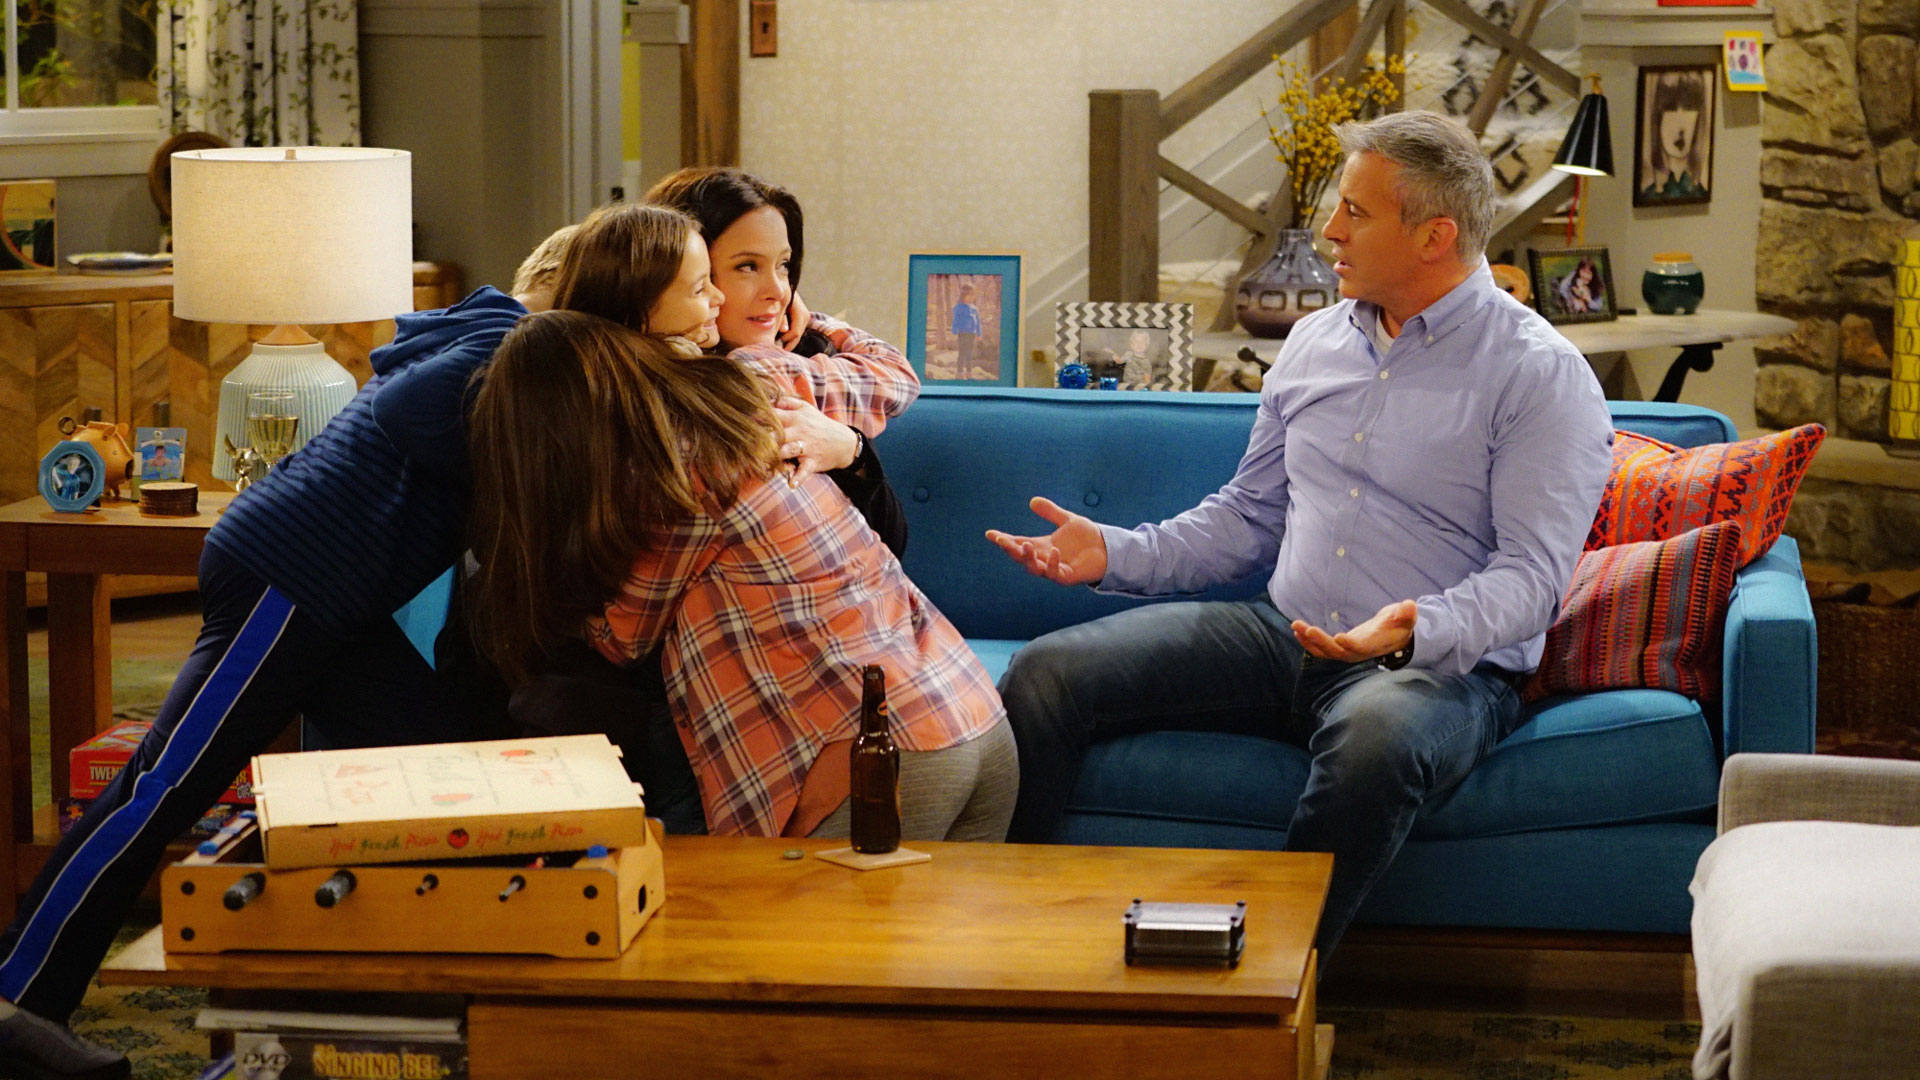 Hala Finley as Emme, Grace Kaufman as Kate, Liza Snyder as Andi, and Matt LeBlanc as Adam